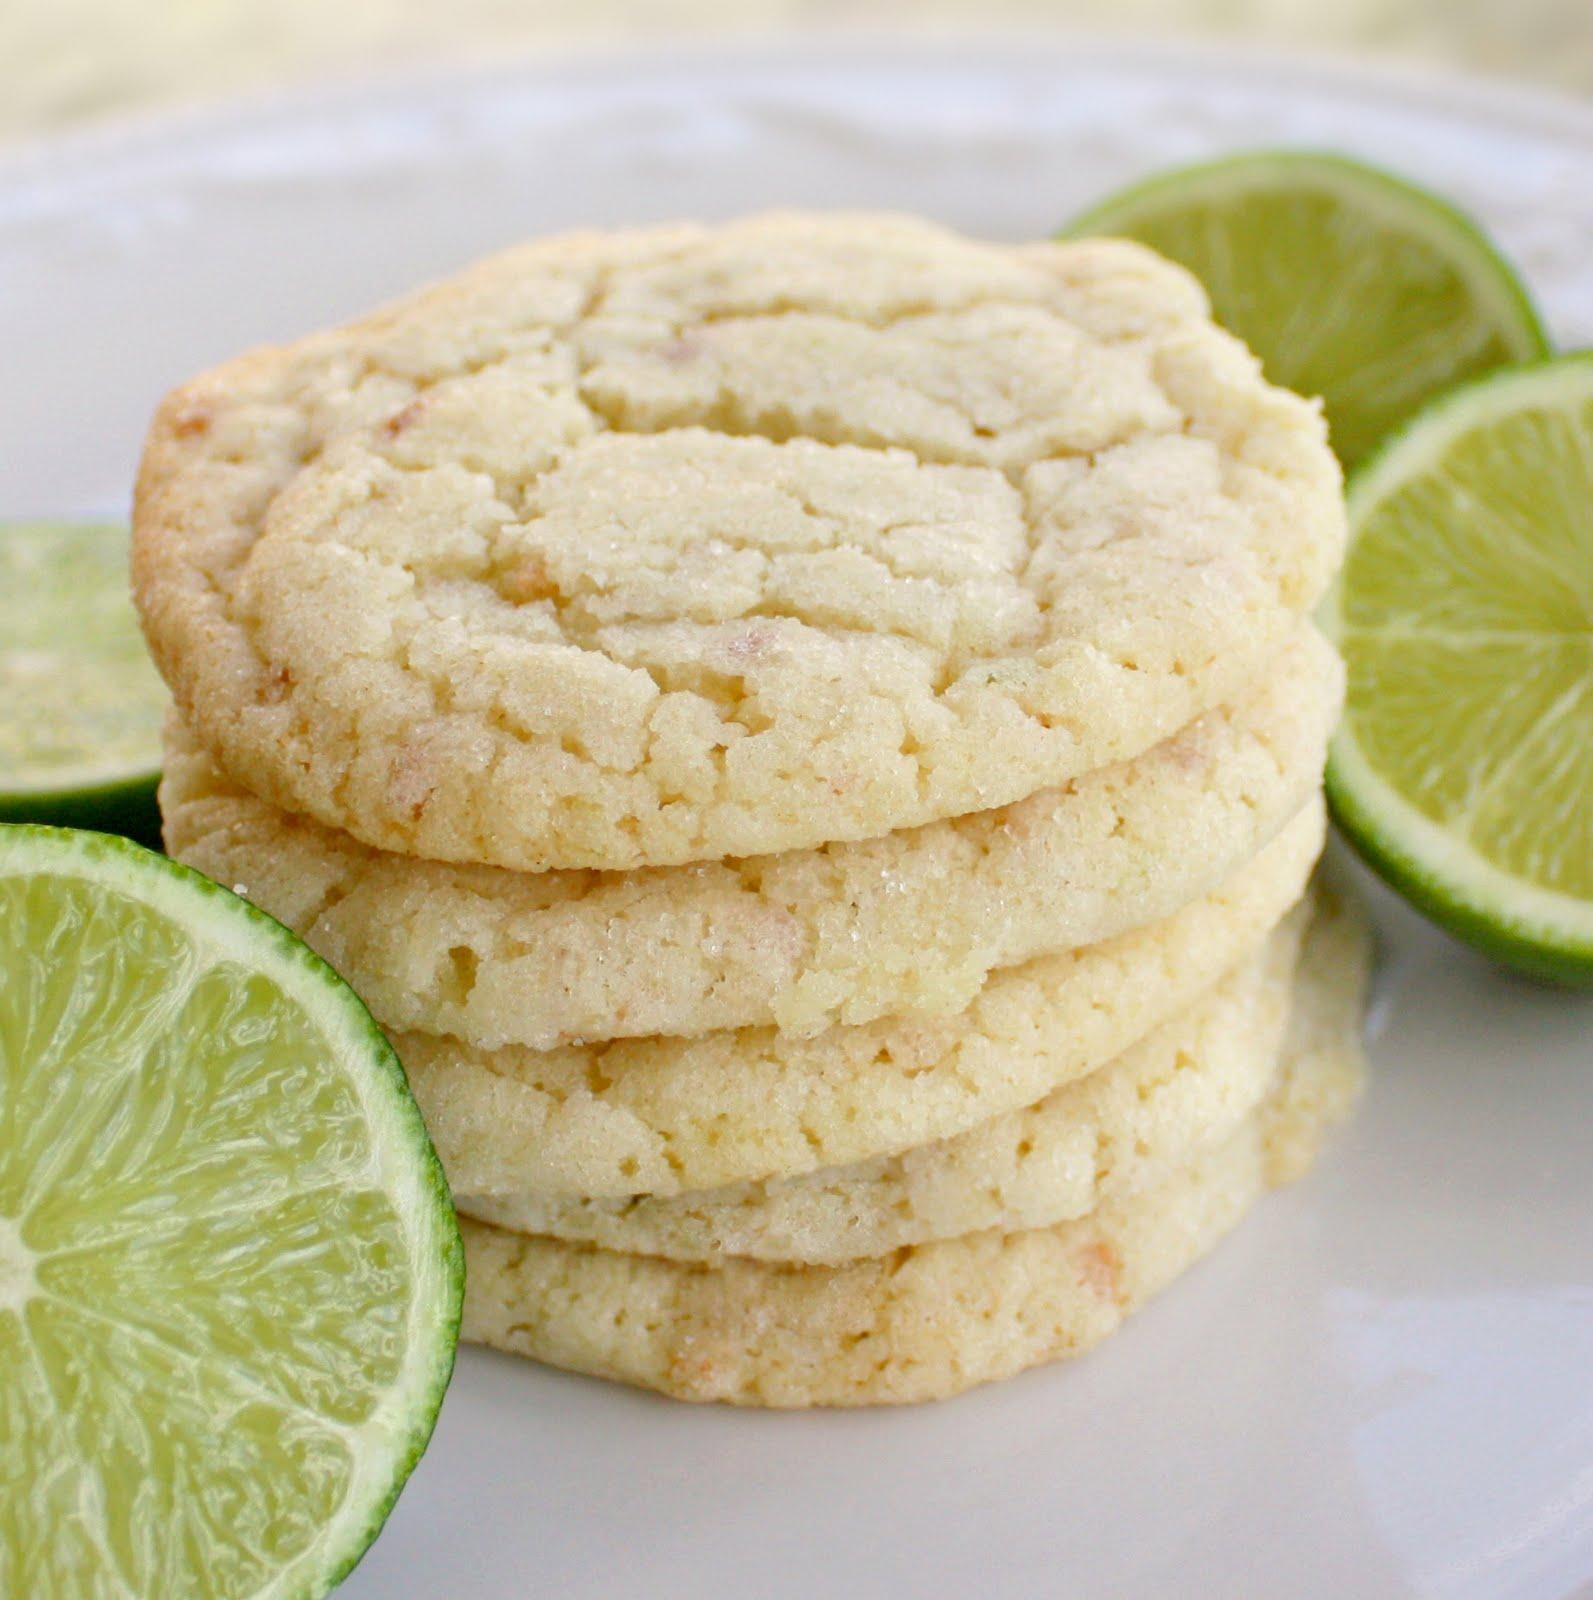 team southards: Coconut Lime Sugar Cookies and Iced Coffee